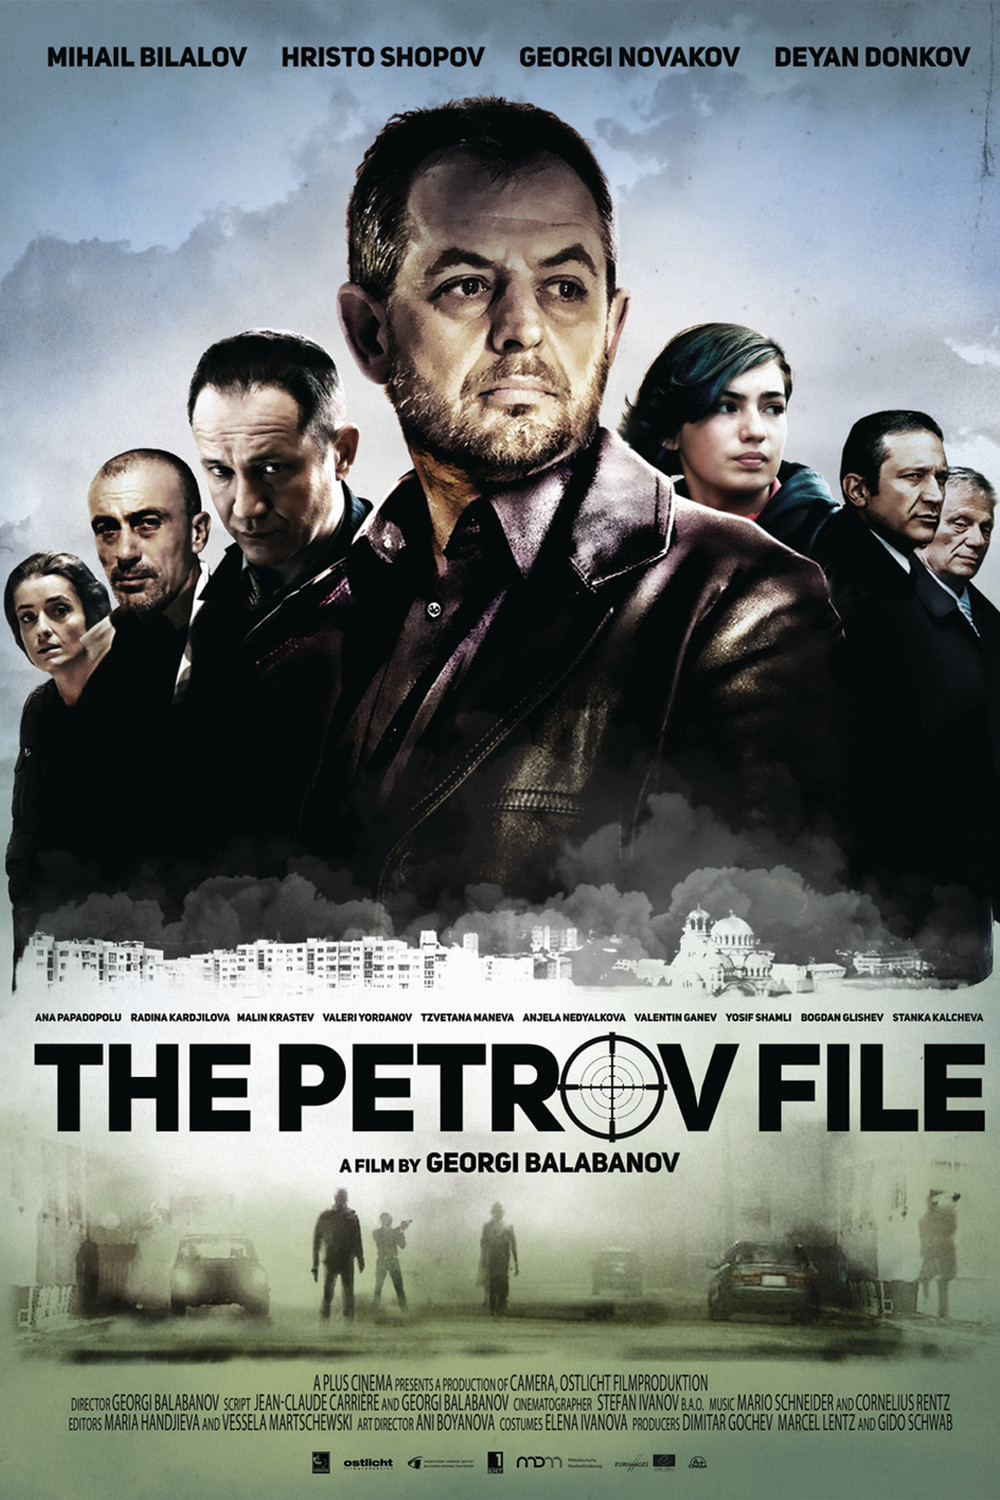 2015_The_Petrov_File_ostlicht_filmproduktion.jpg